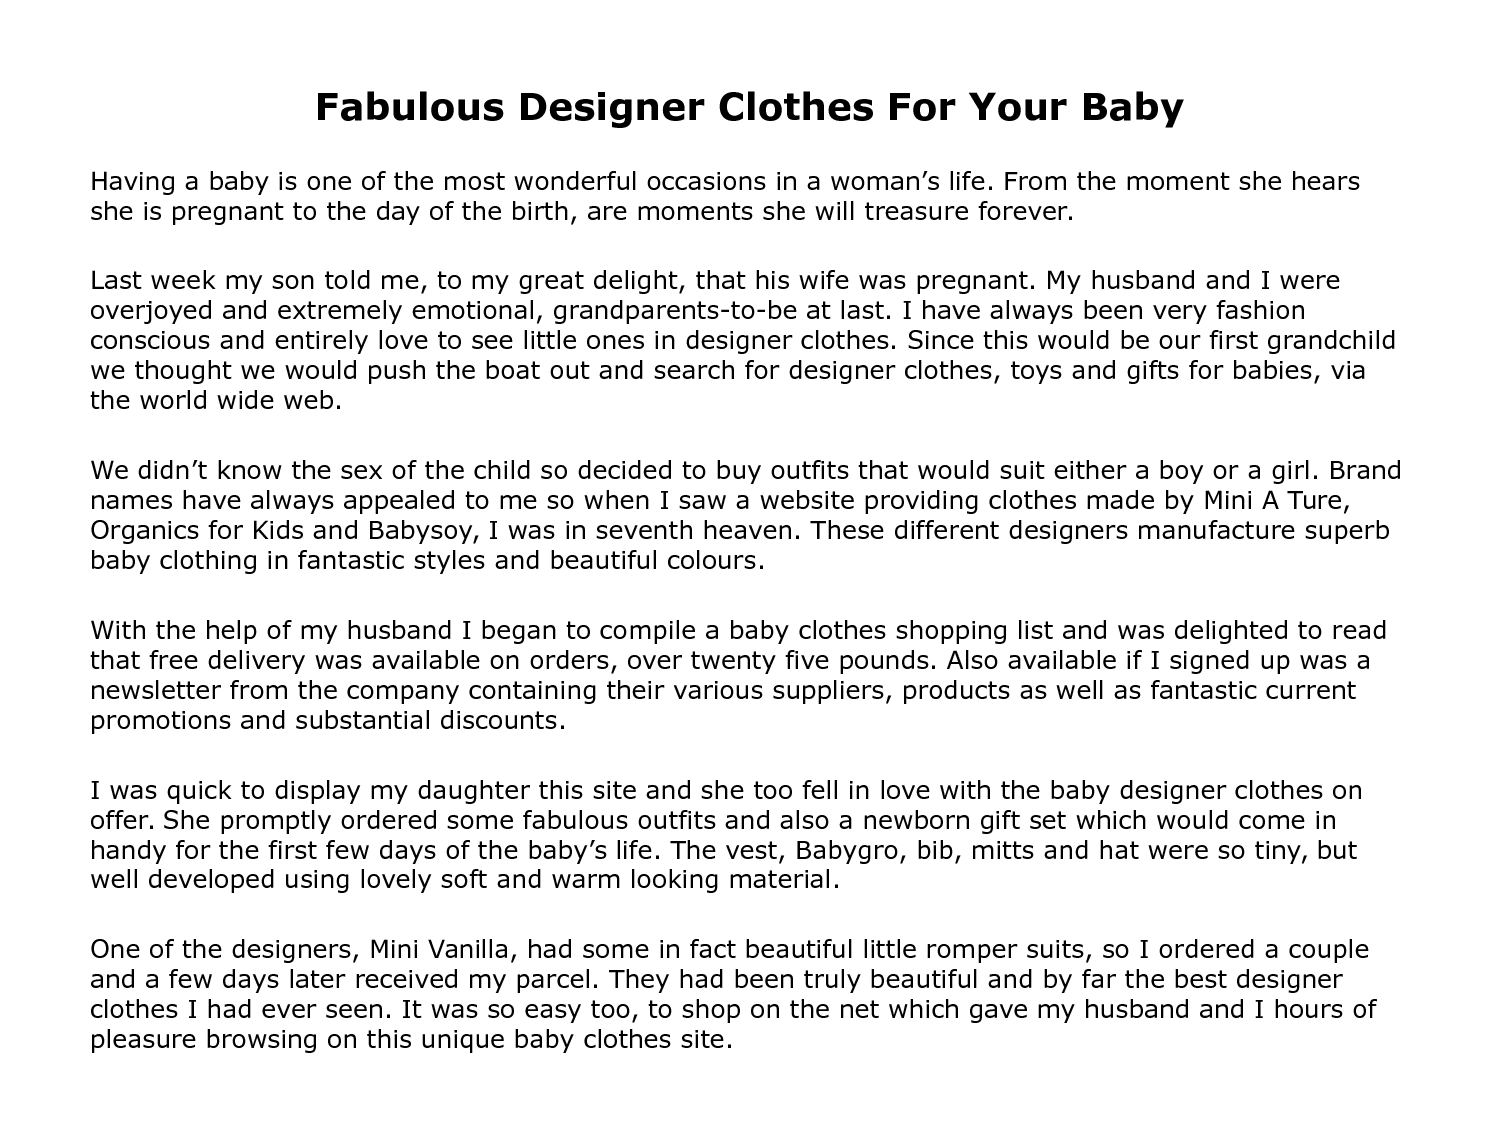 Calaméo - Fabulous Designer Clothes For Your Baby